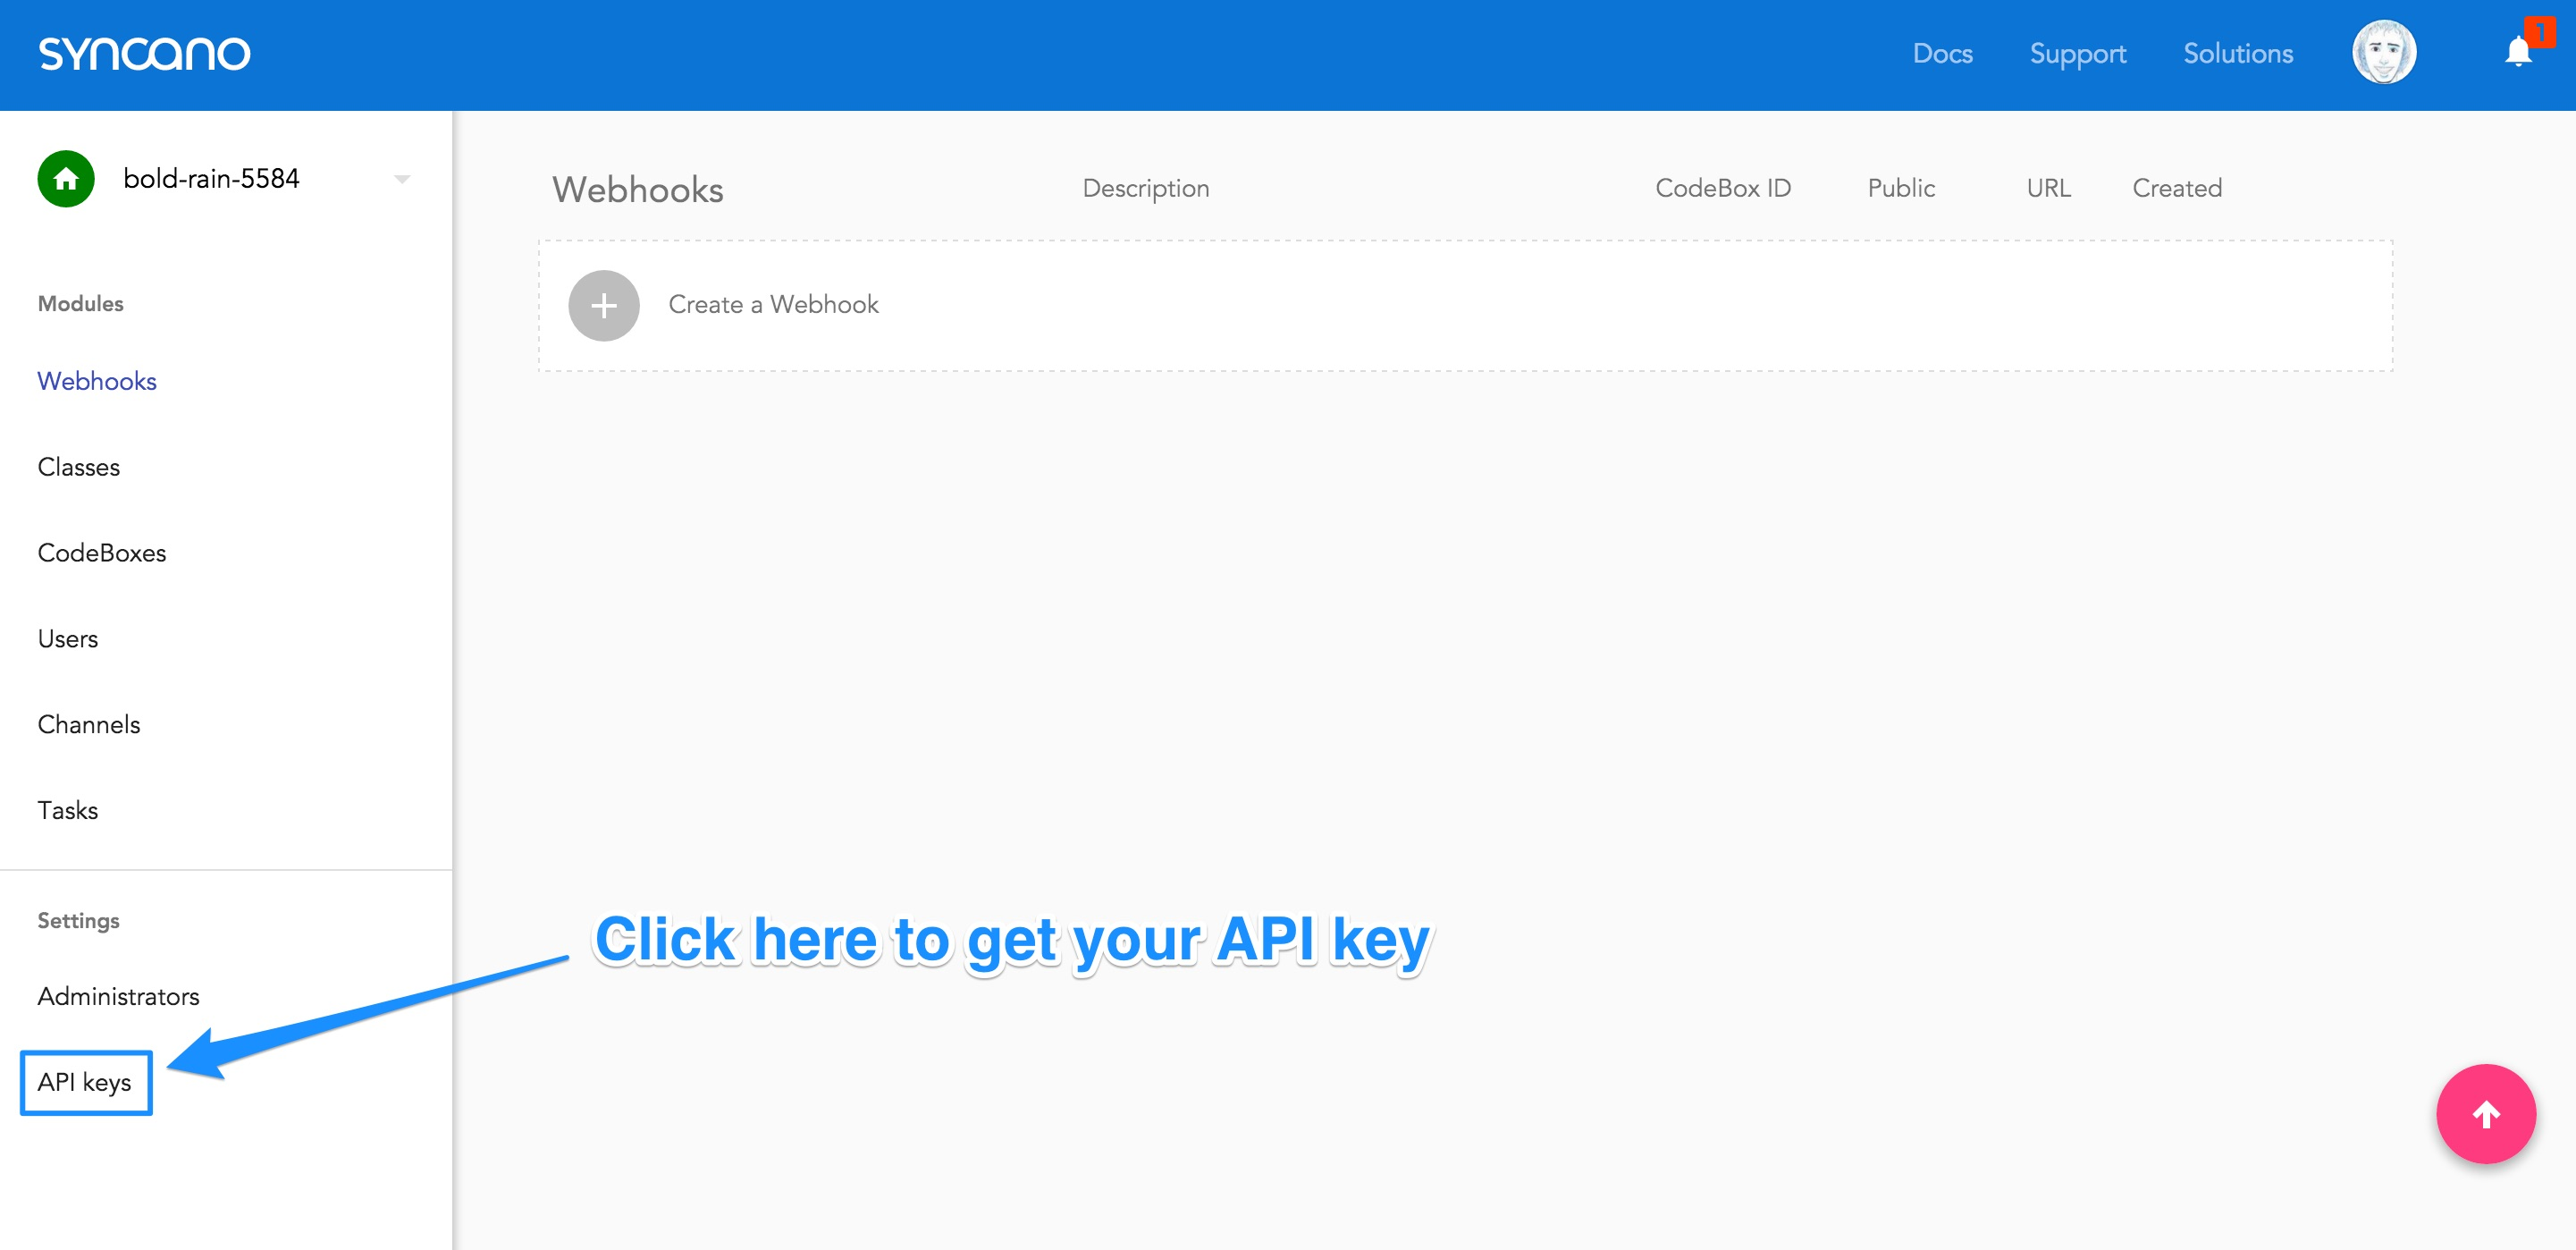 Going to the Get API Key screen